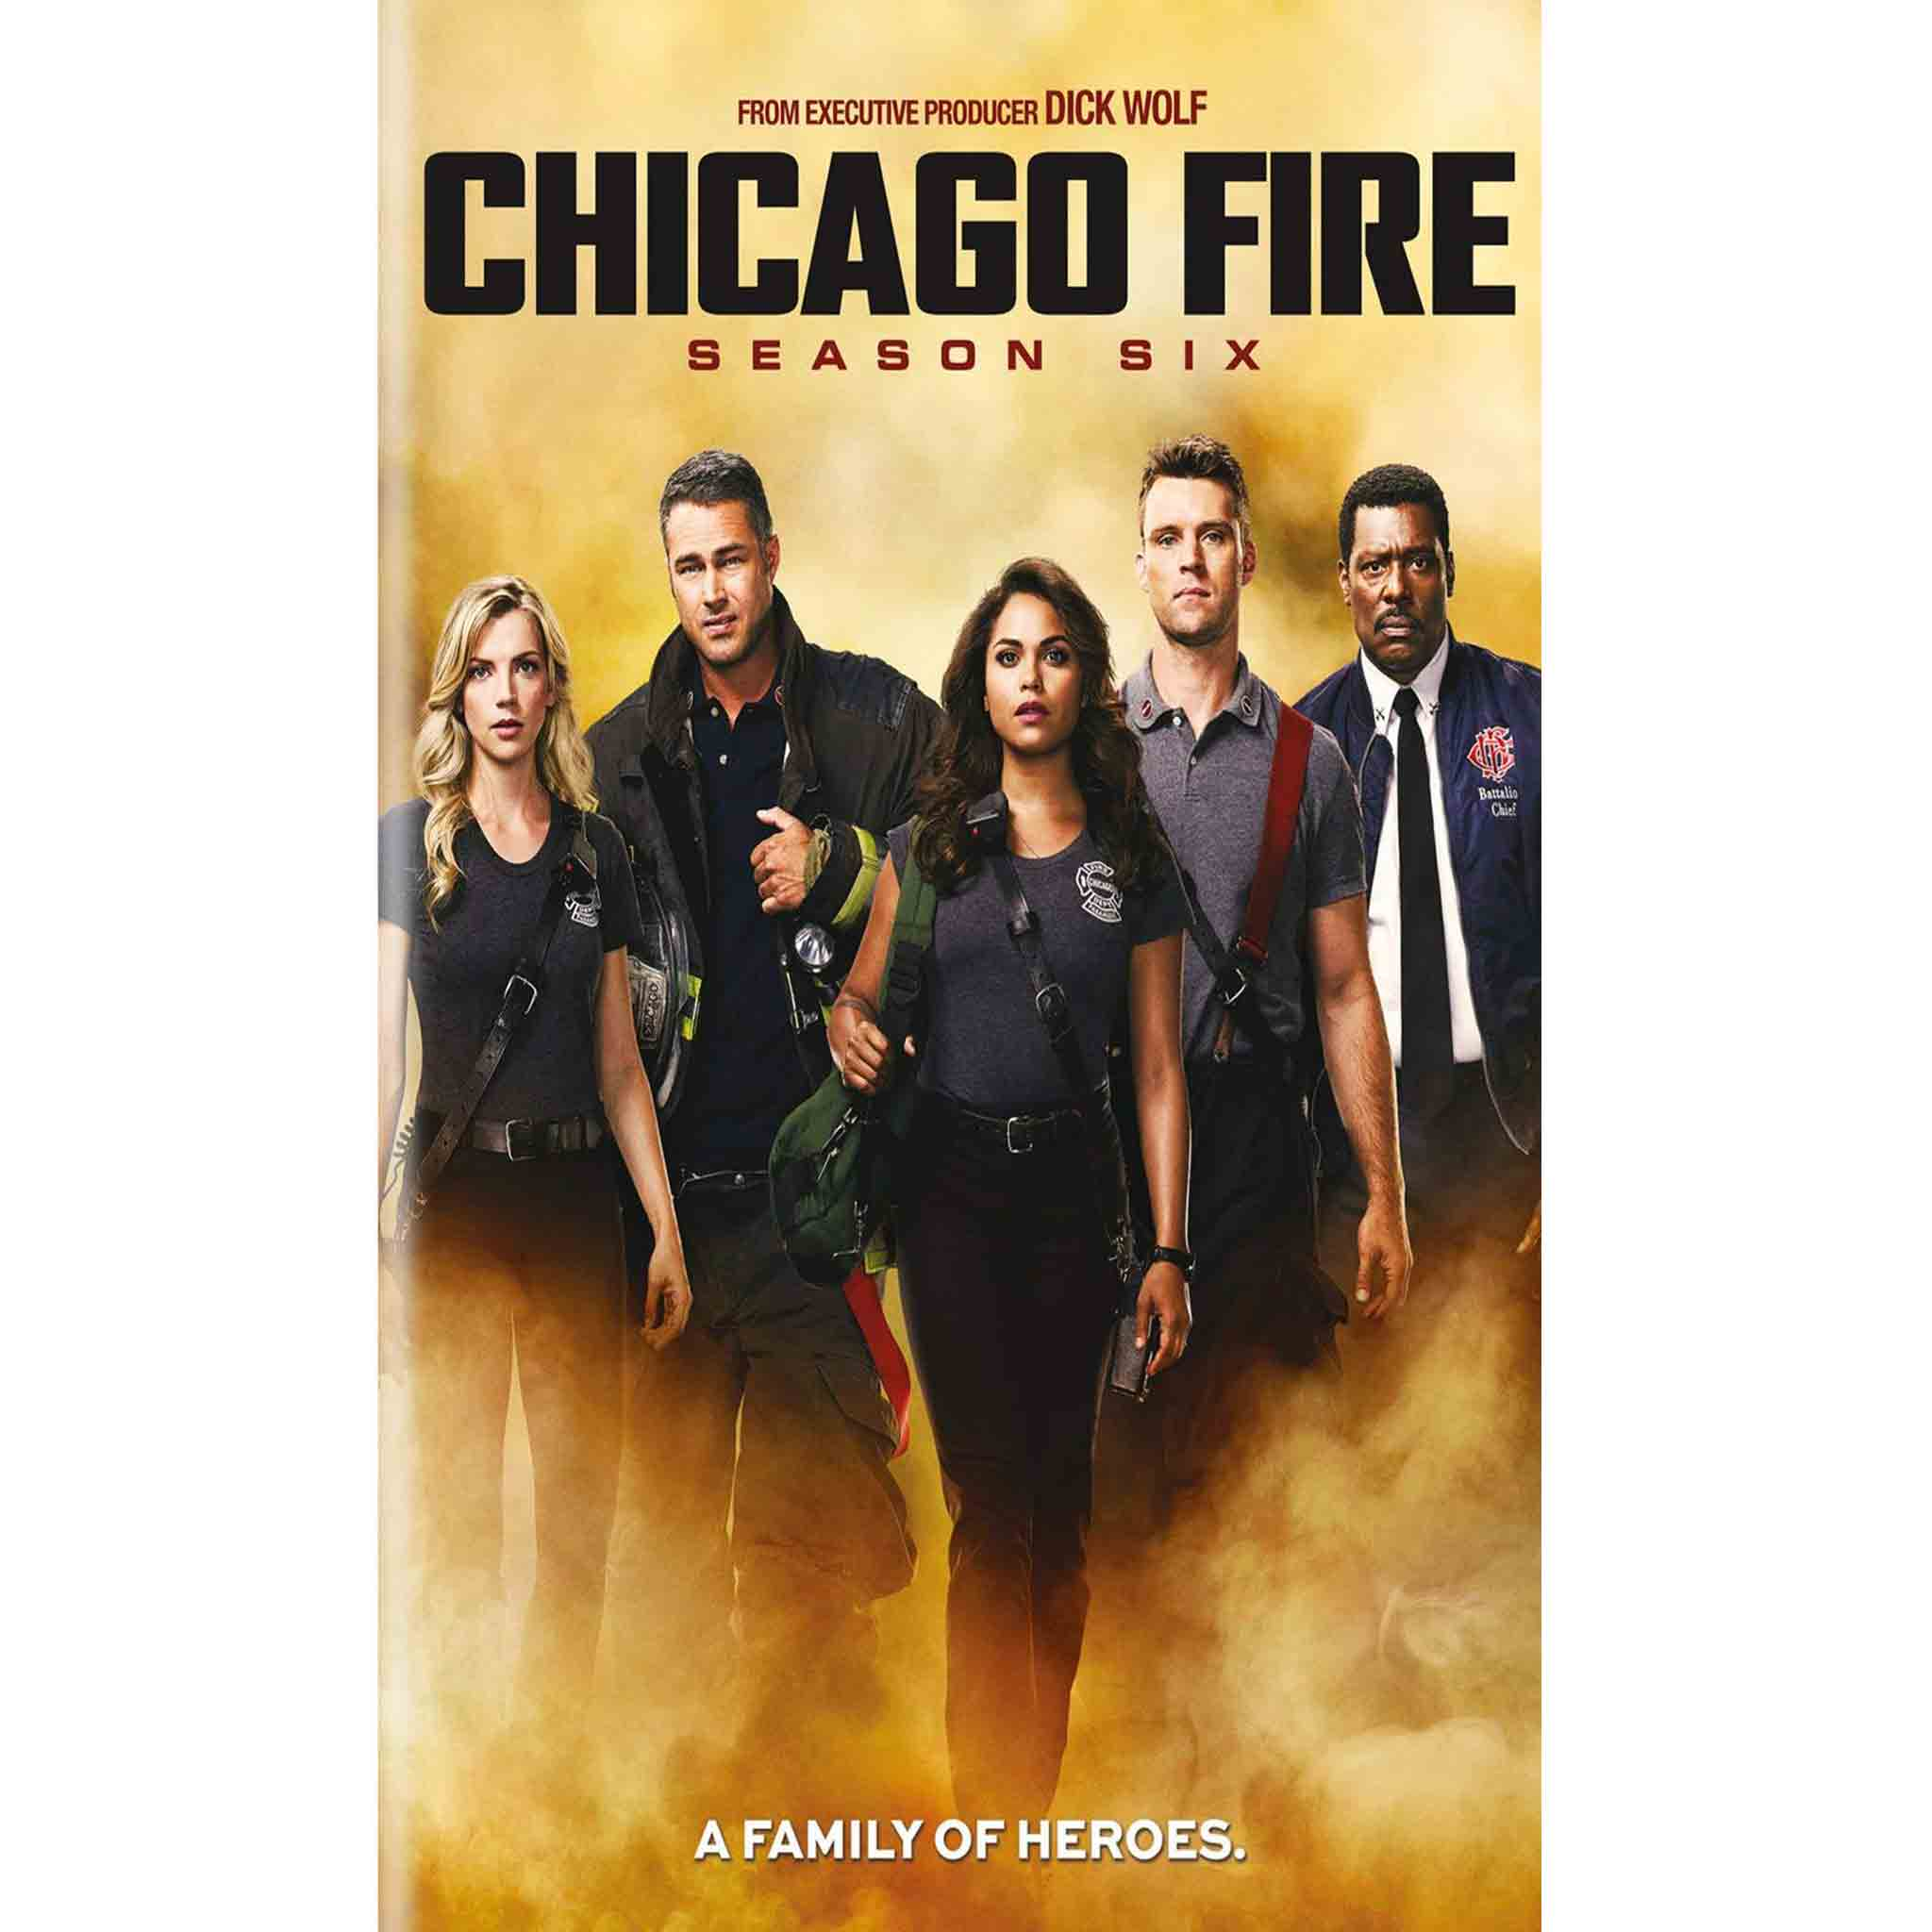 Chicago Fire Season 6 (DVD) - DVDsHQ